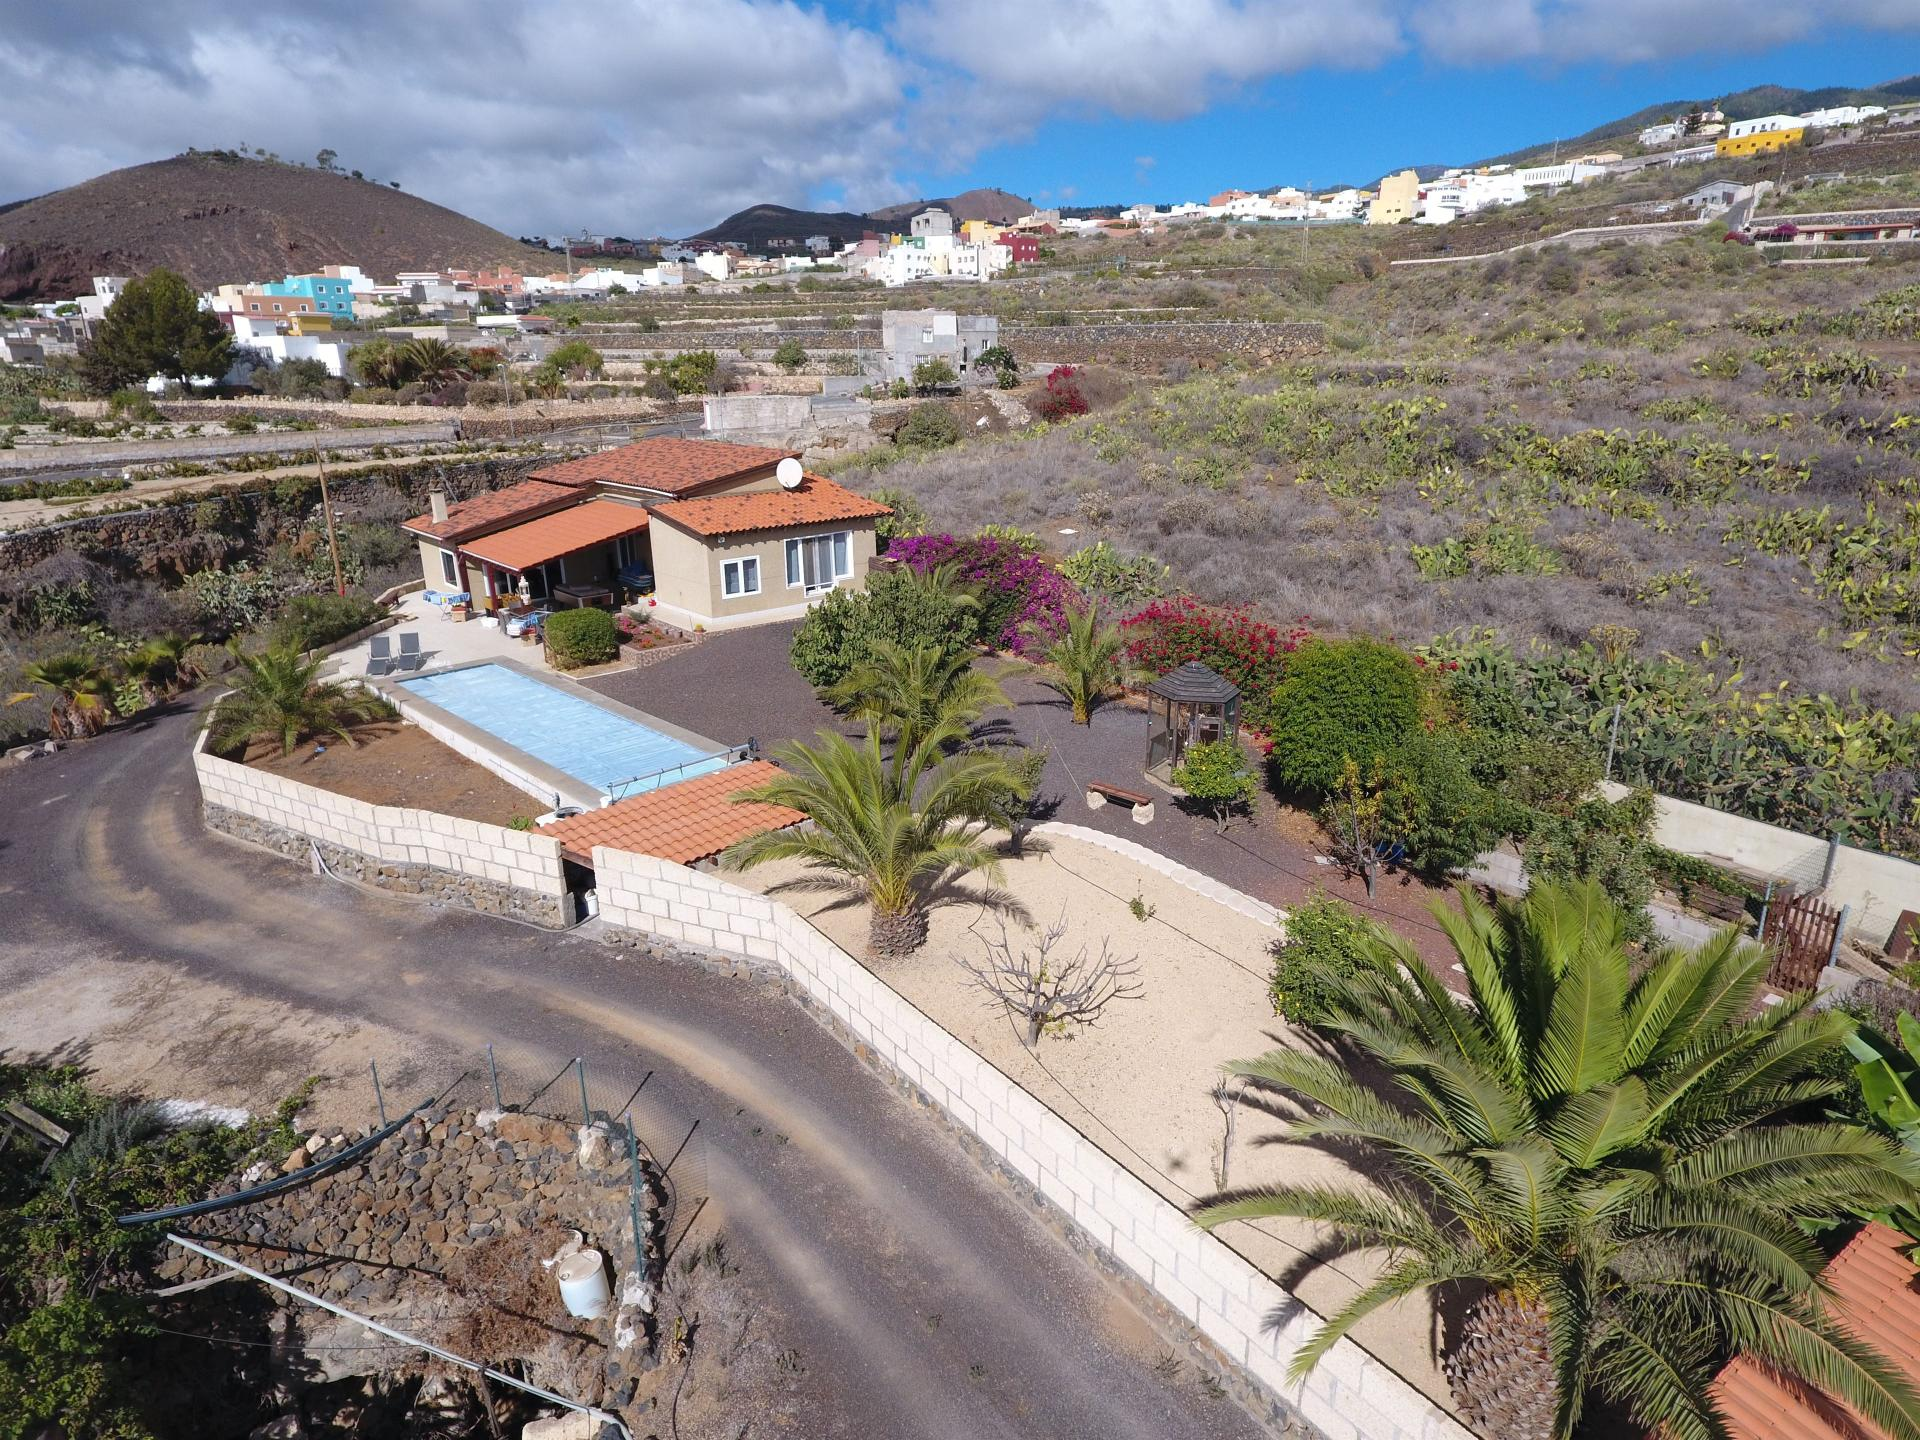 Amazing house located in Charco del Pino. The house has been completely renovated with .... more info